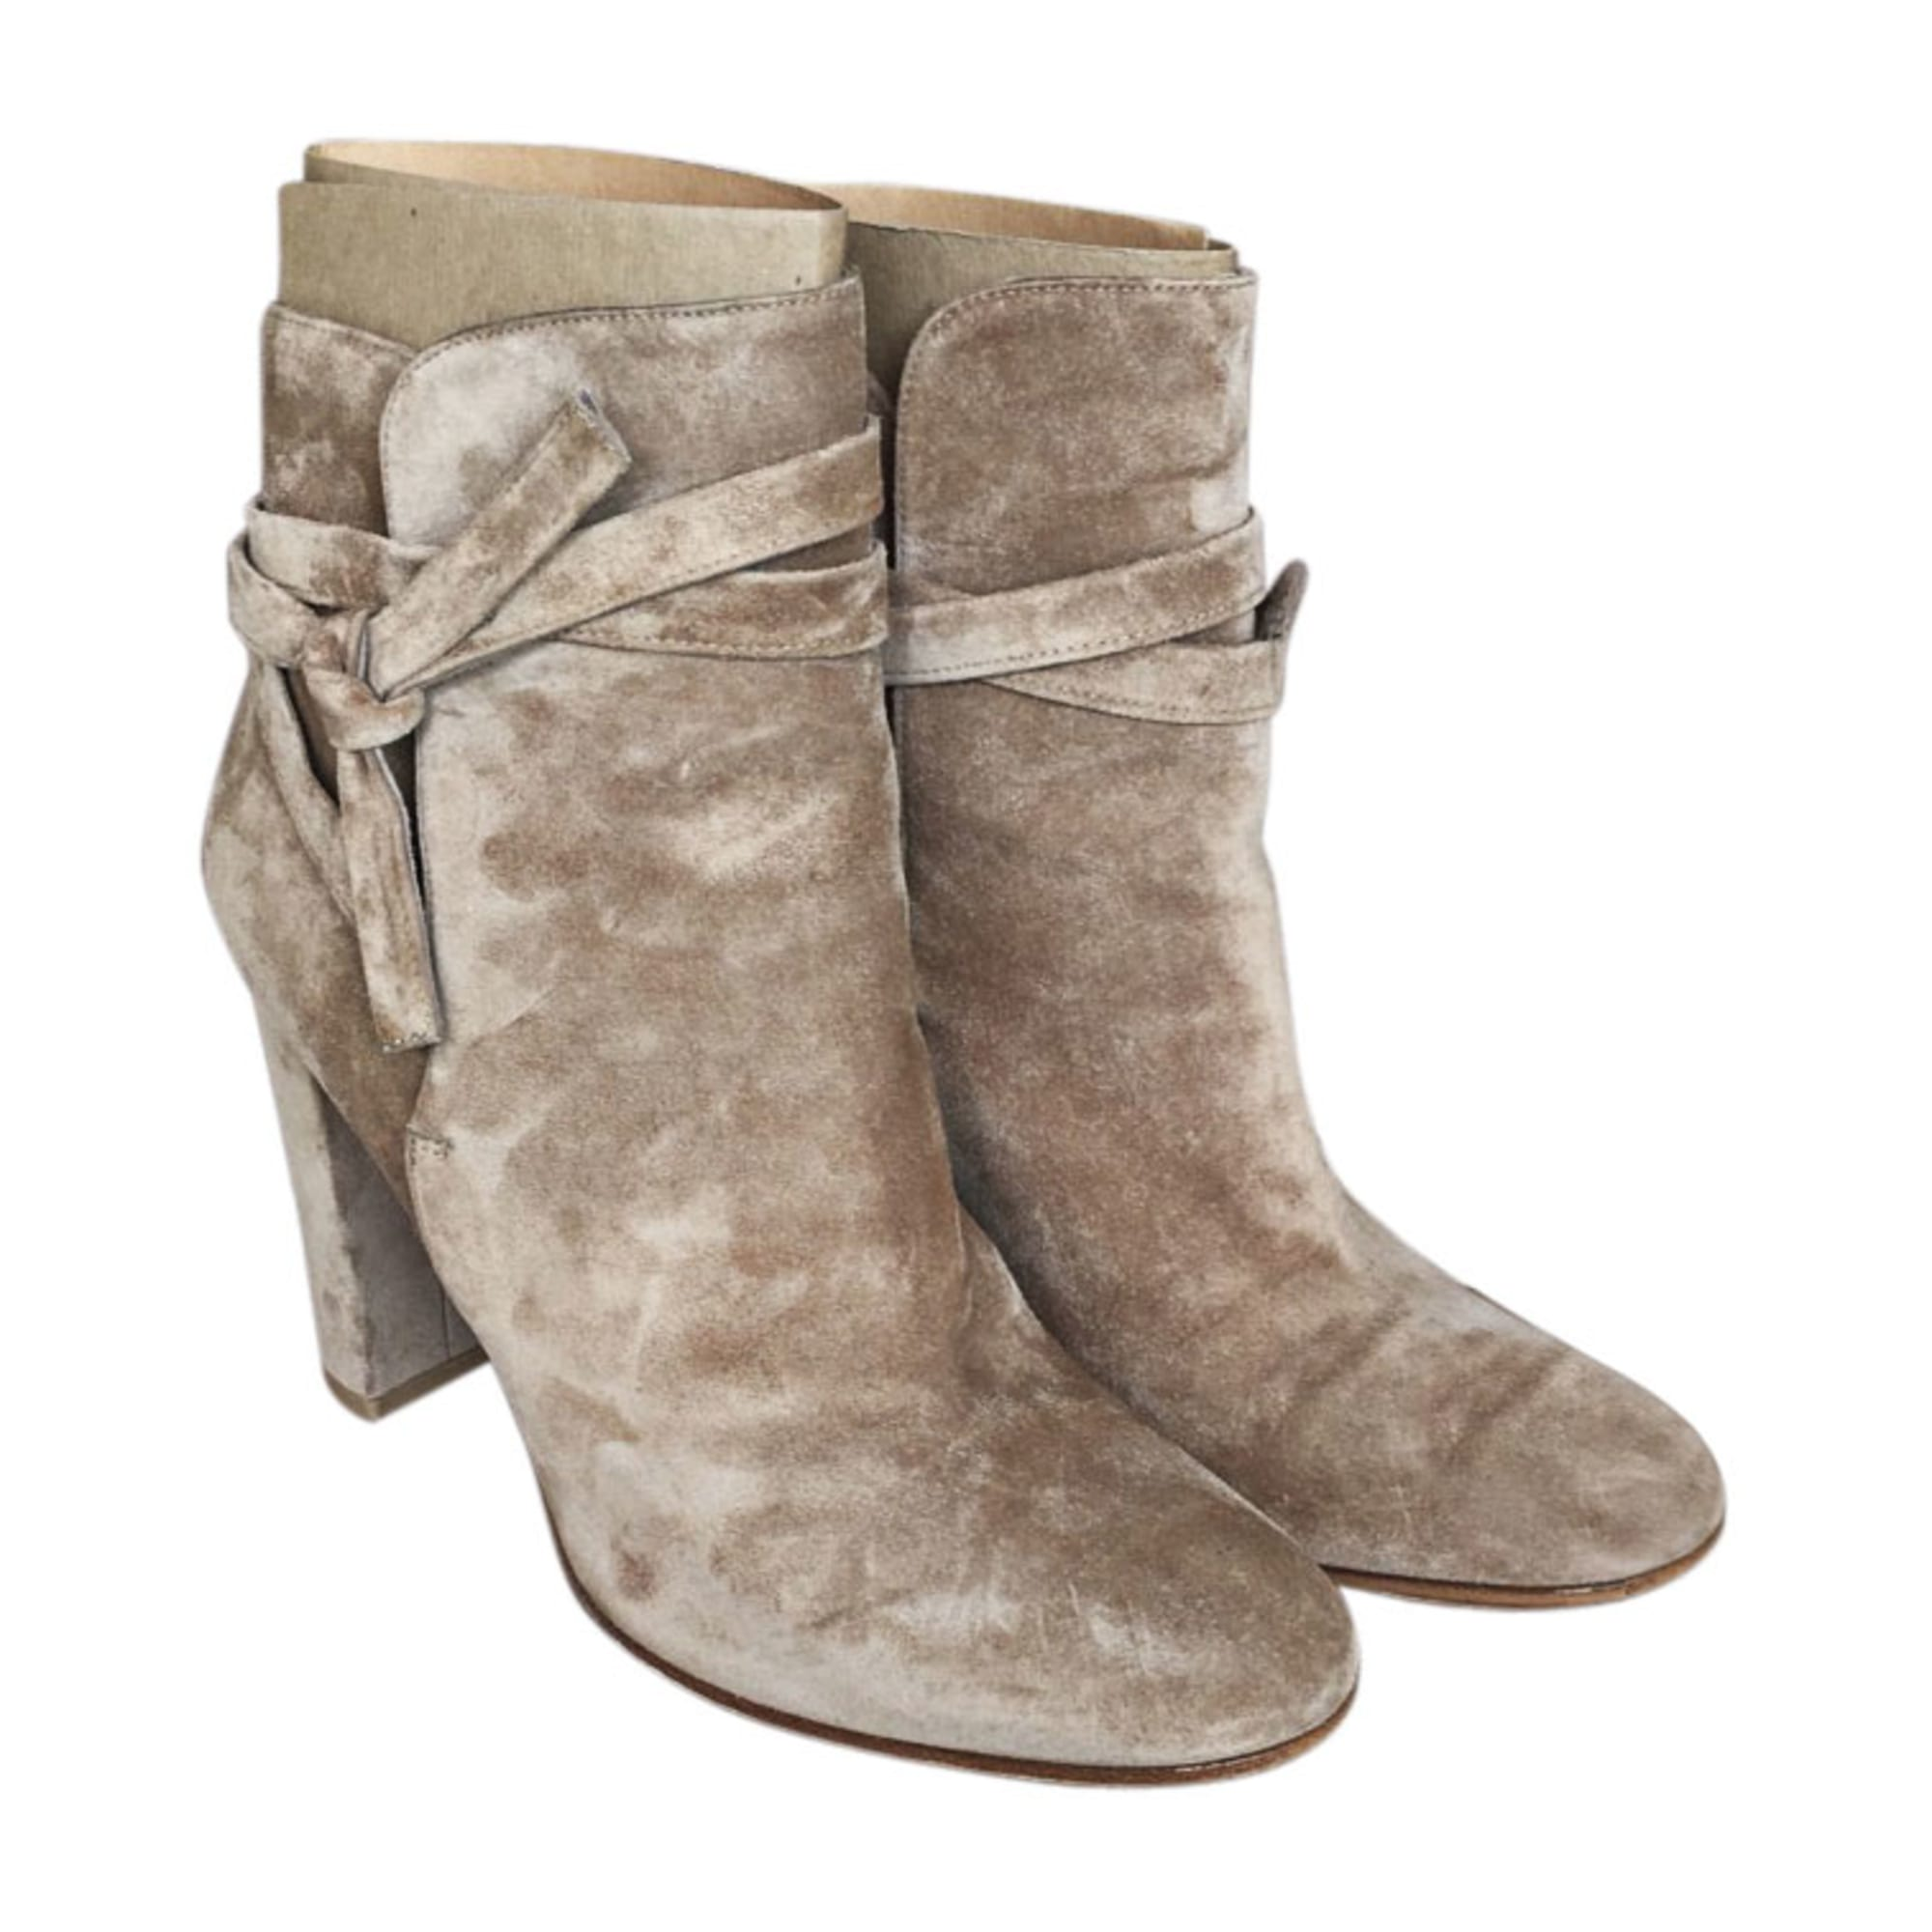 Bottines & low boots à talons GIANVITO ROSSI Beige, camel